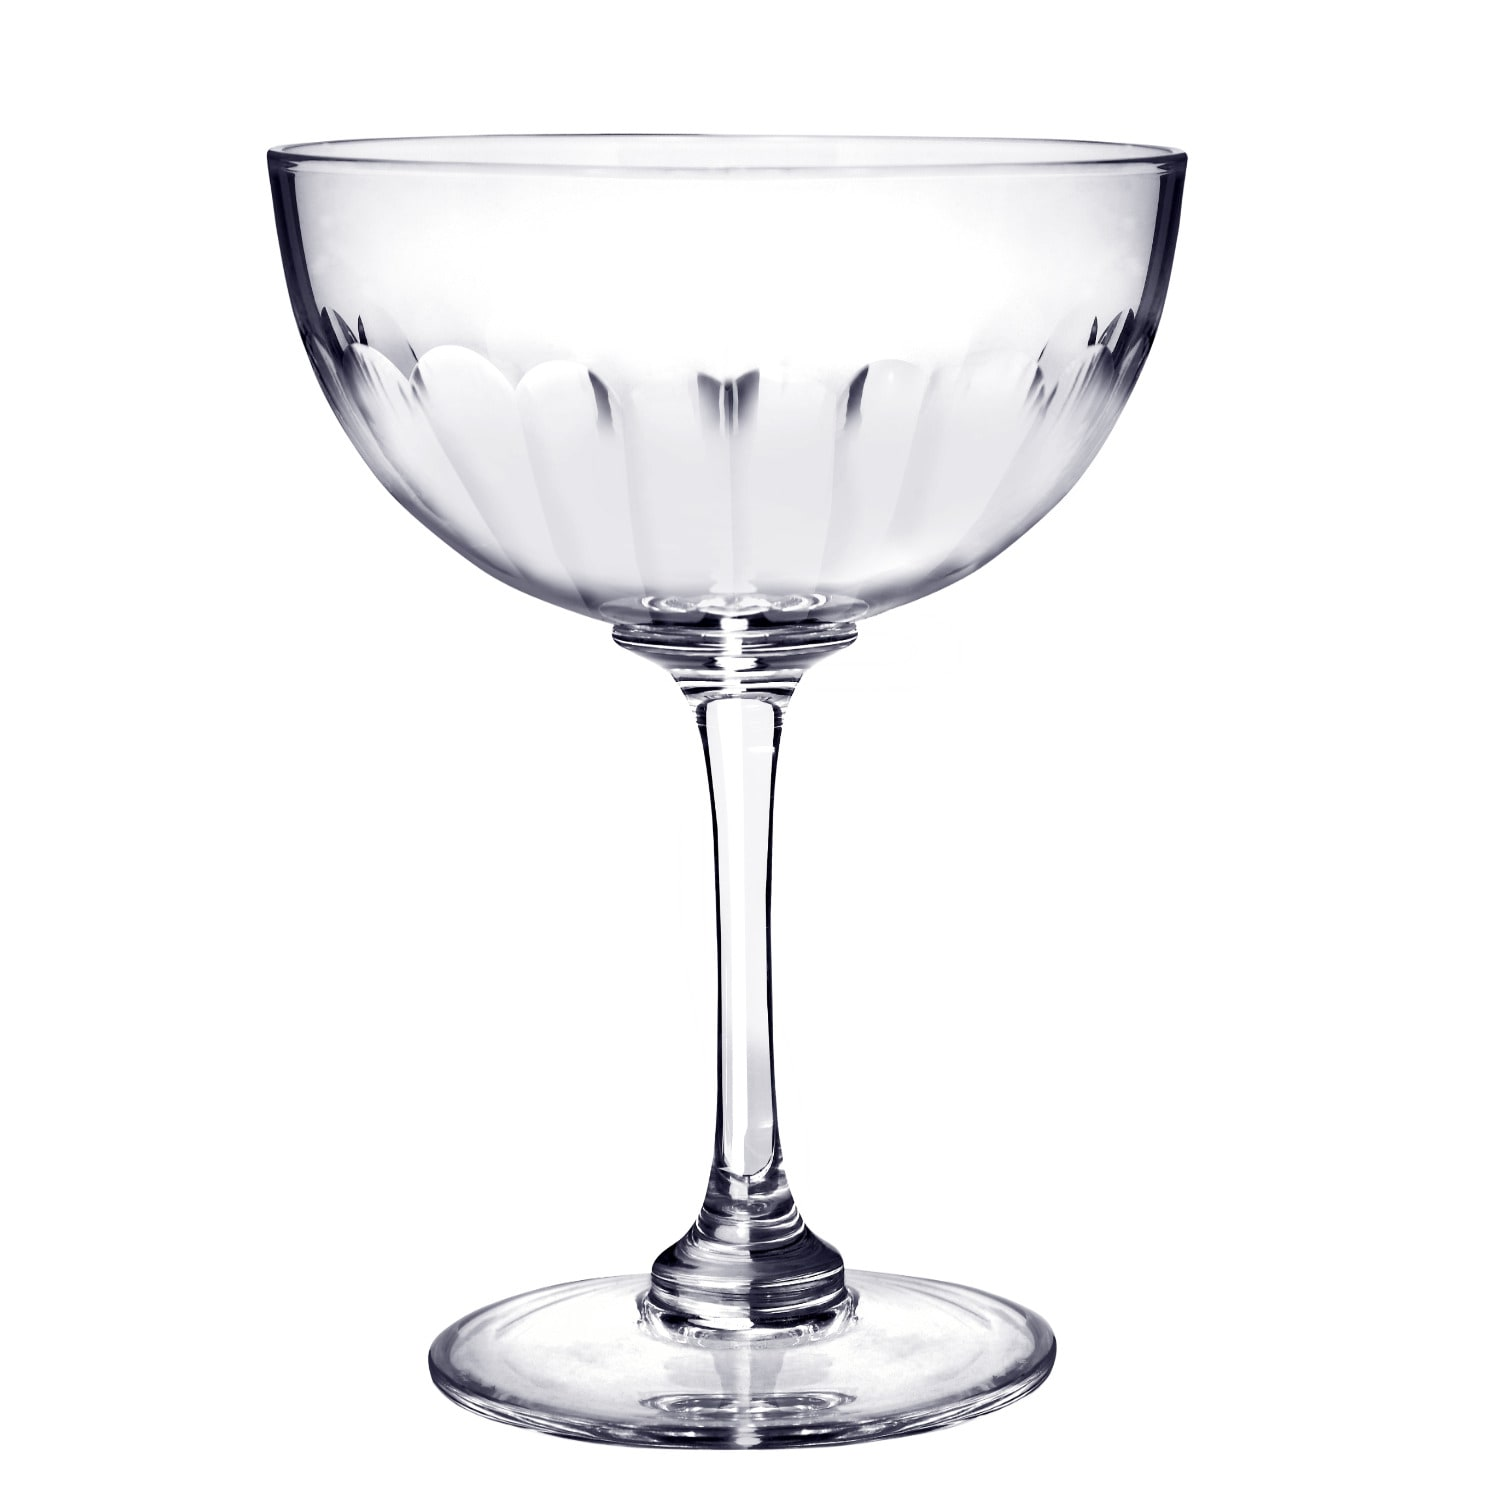 The Vintage List - Six Hand-Engraved Crystal Champagne Saucers With Lens Design